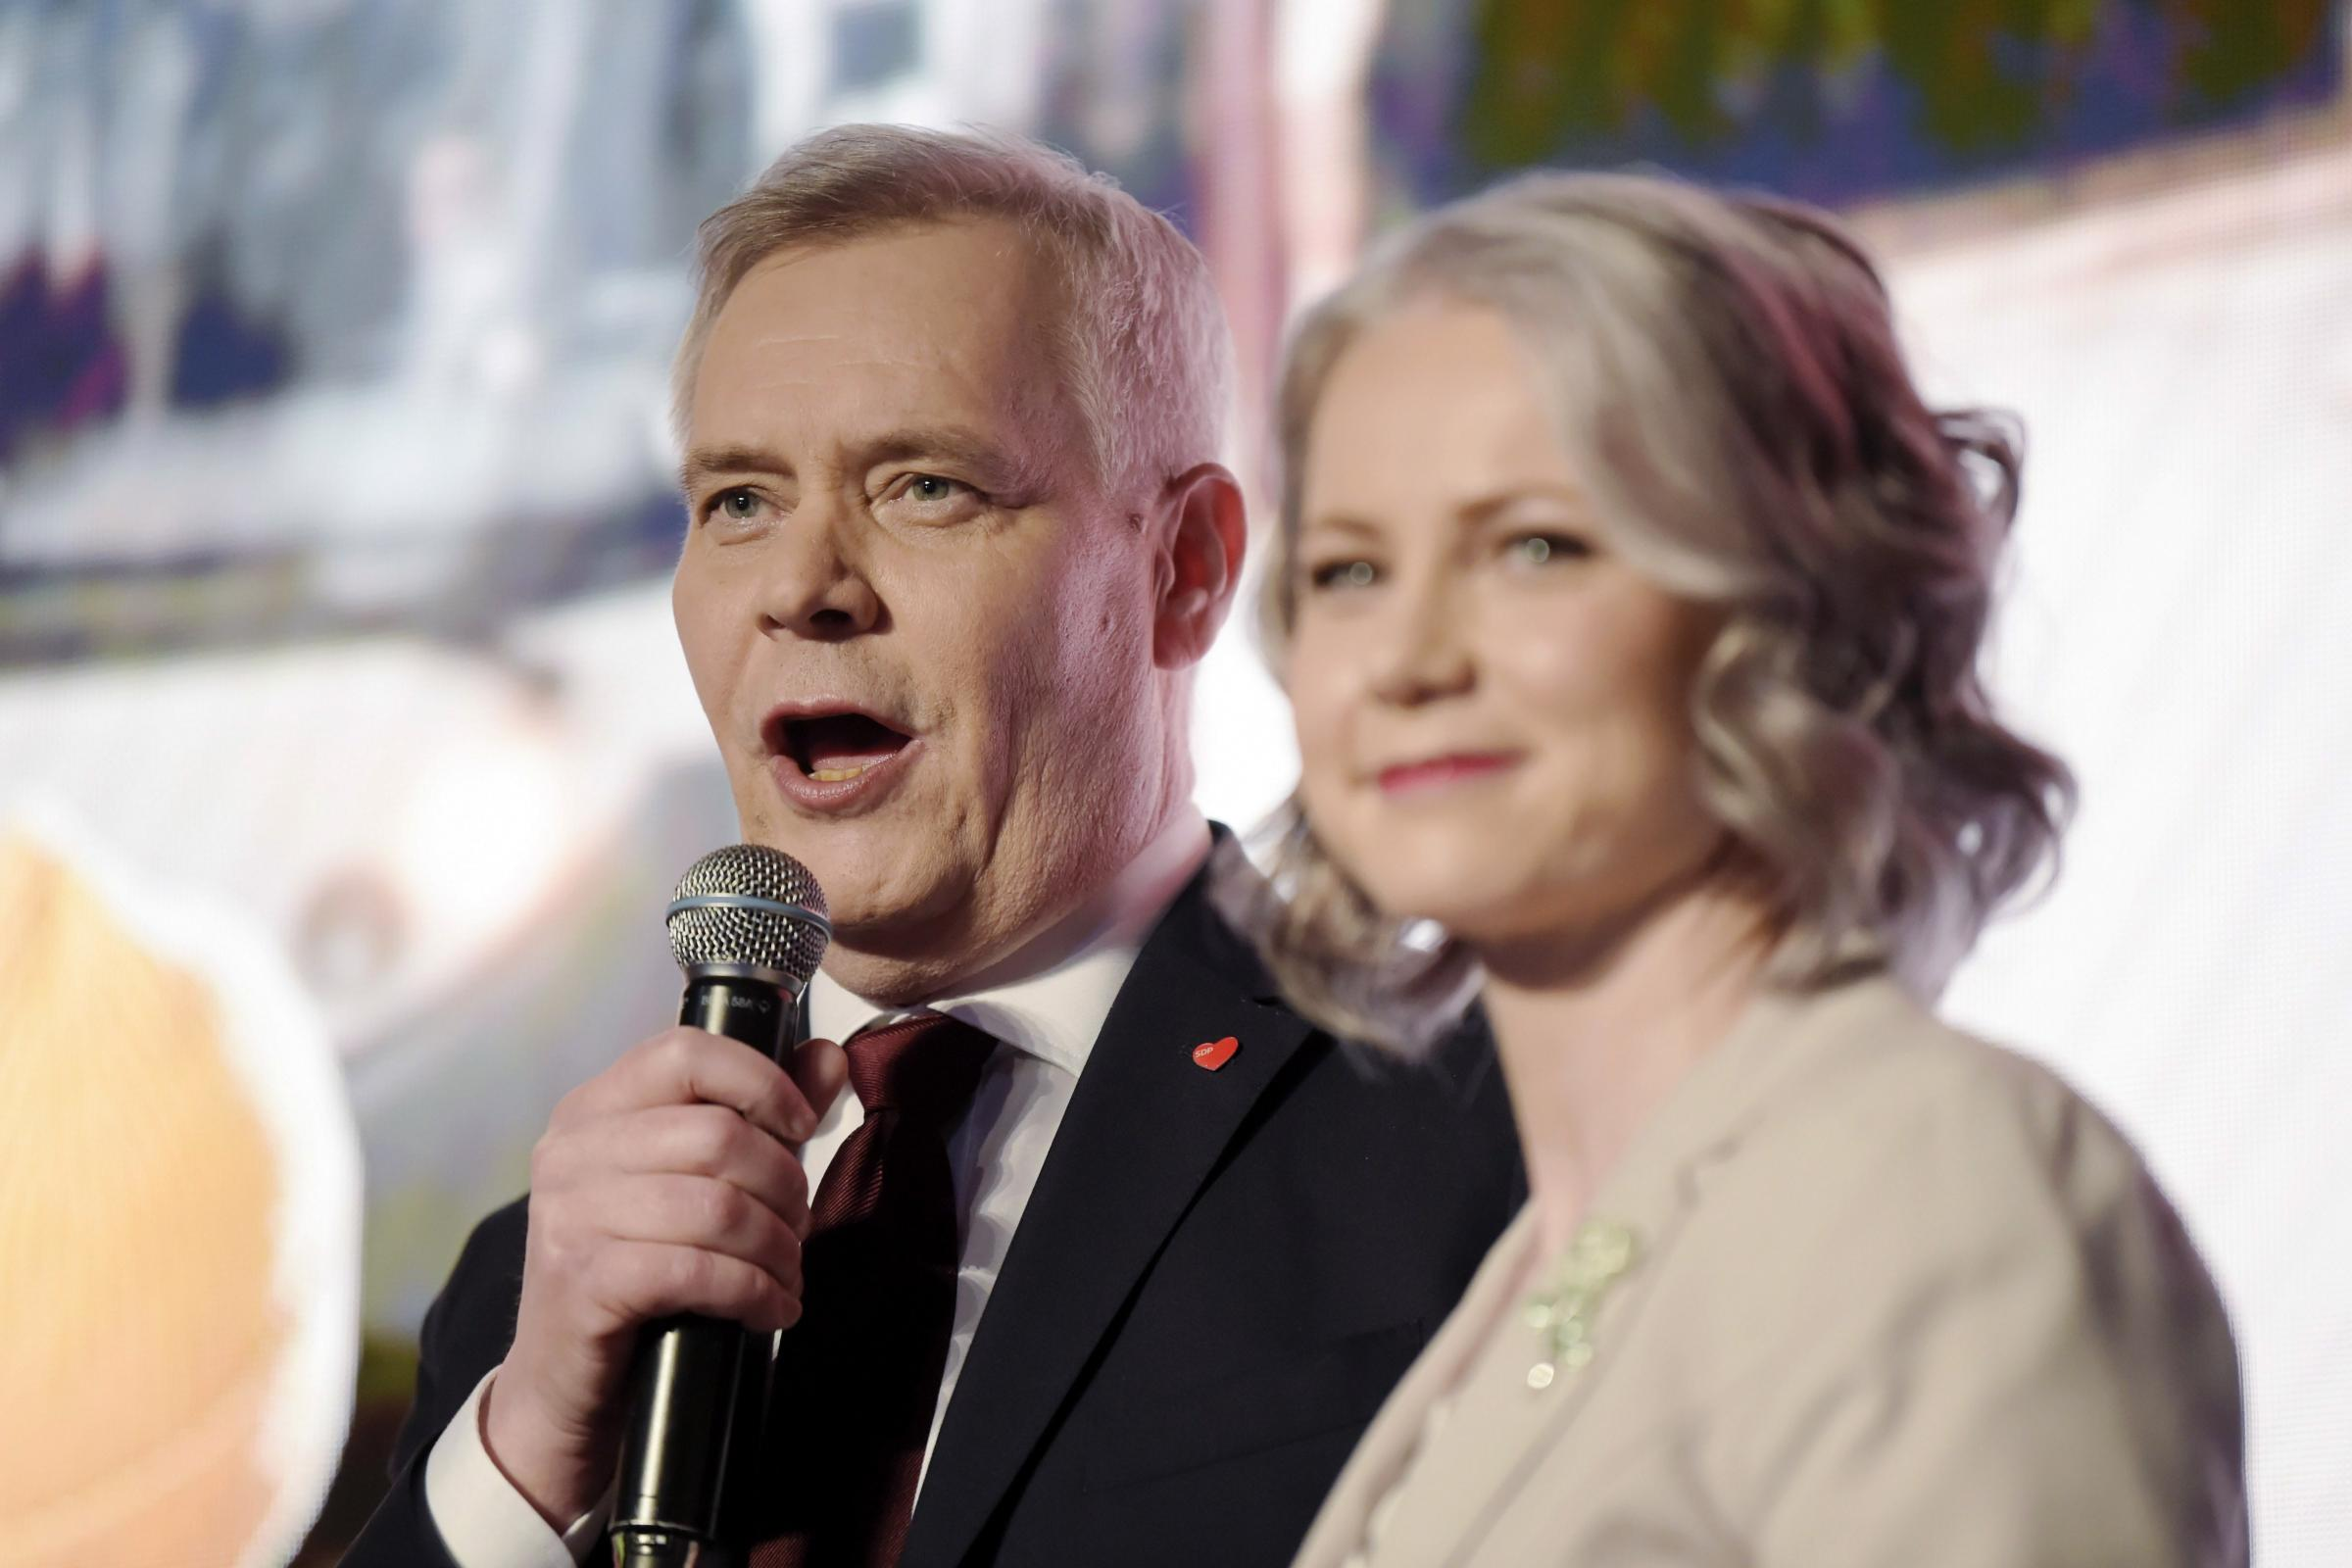 Antti Rinne with his wife Heta Ravolainen-Rinne